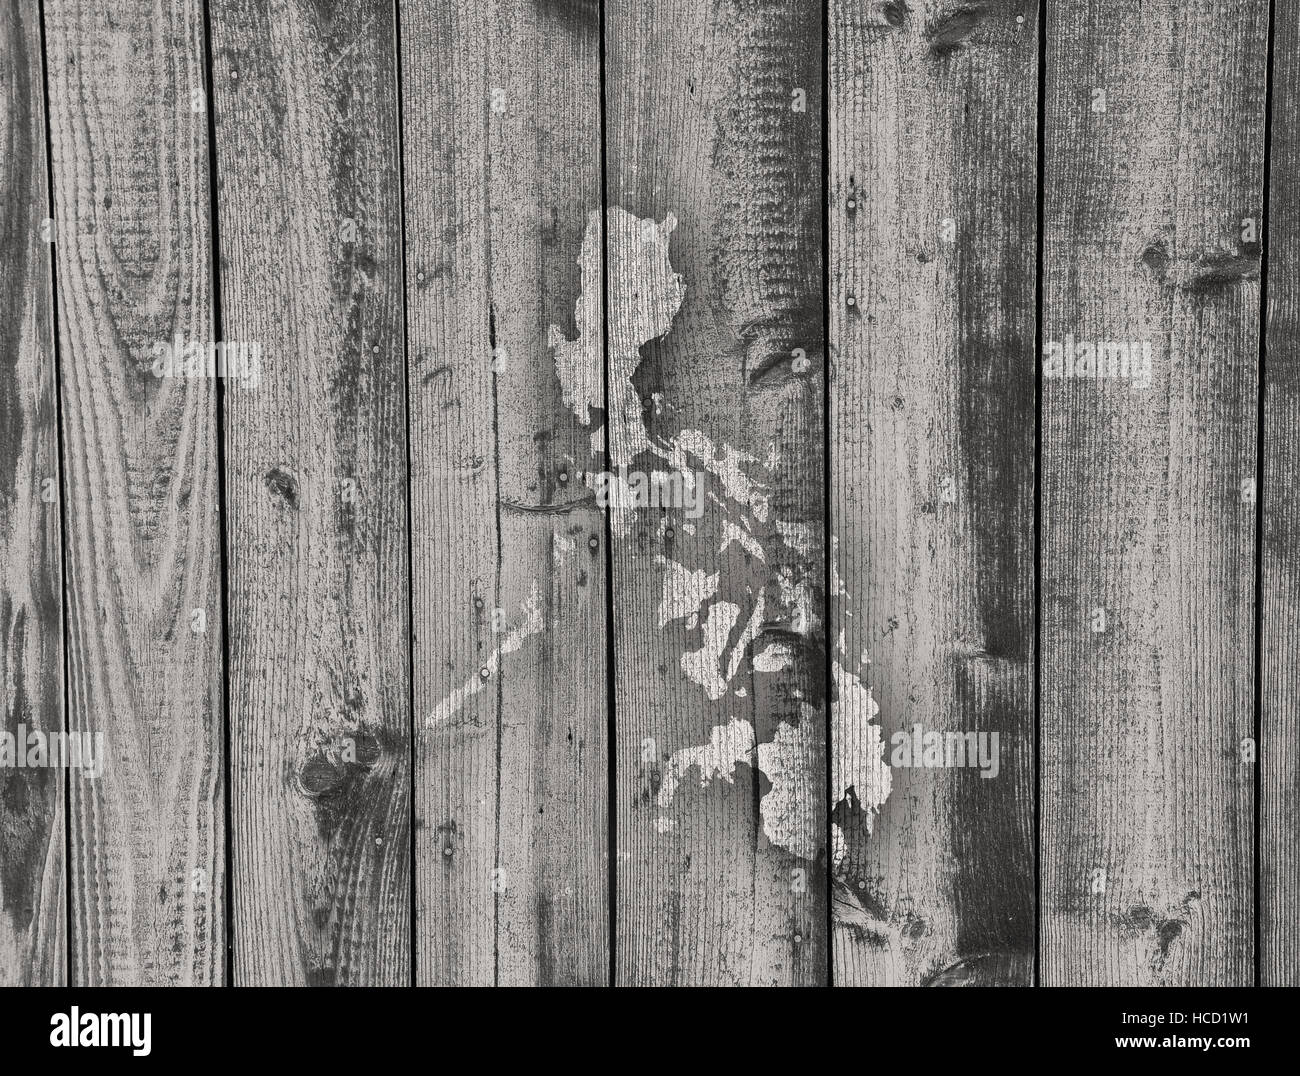 Map of the Philippines on weathered wood Stock Photo Royalty Free